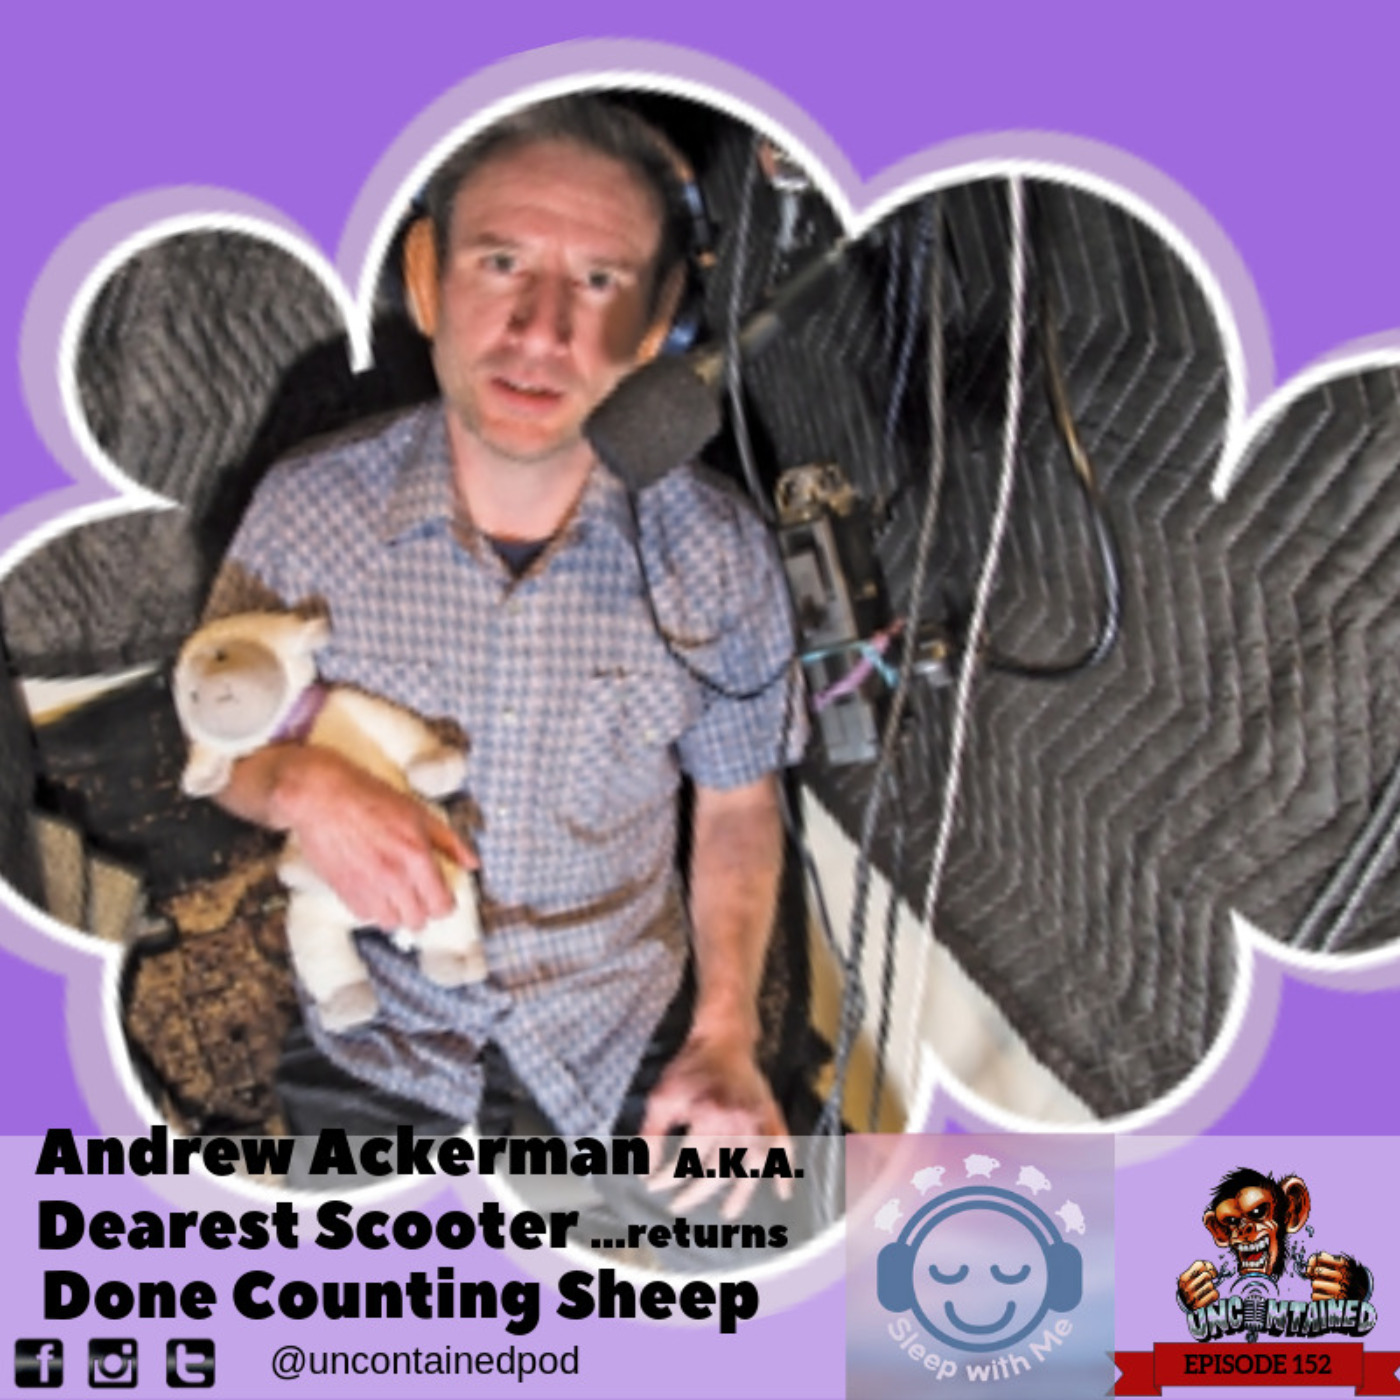 Episode 152: Andrew Ackerman A.K.A. Dearest Scooter - Done Counting Sheep